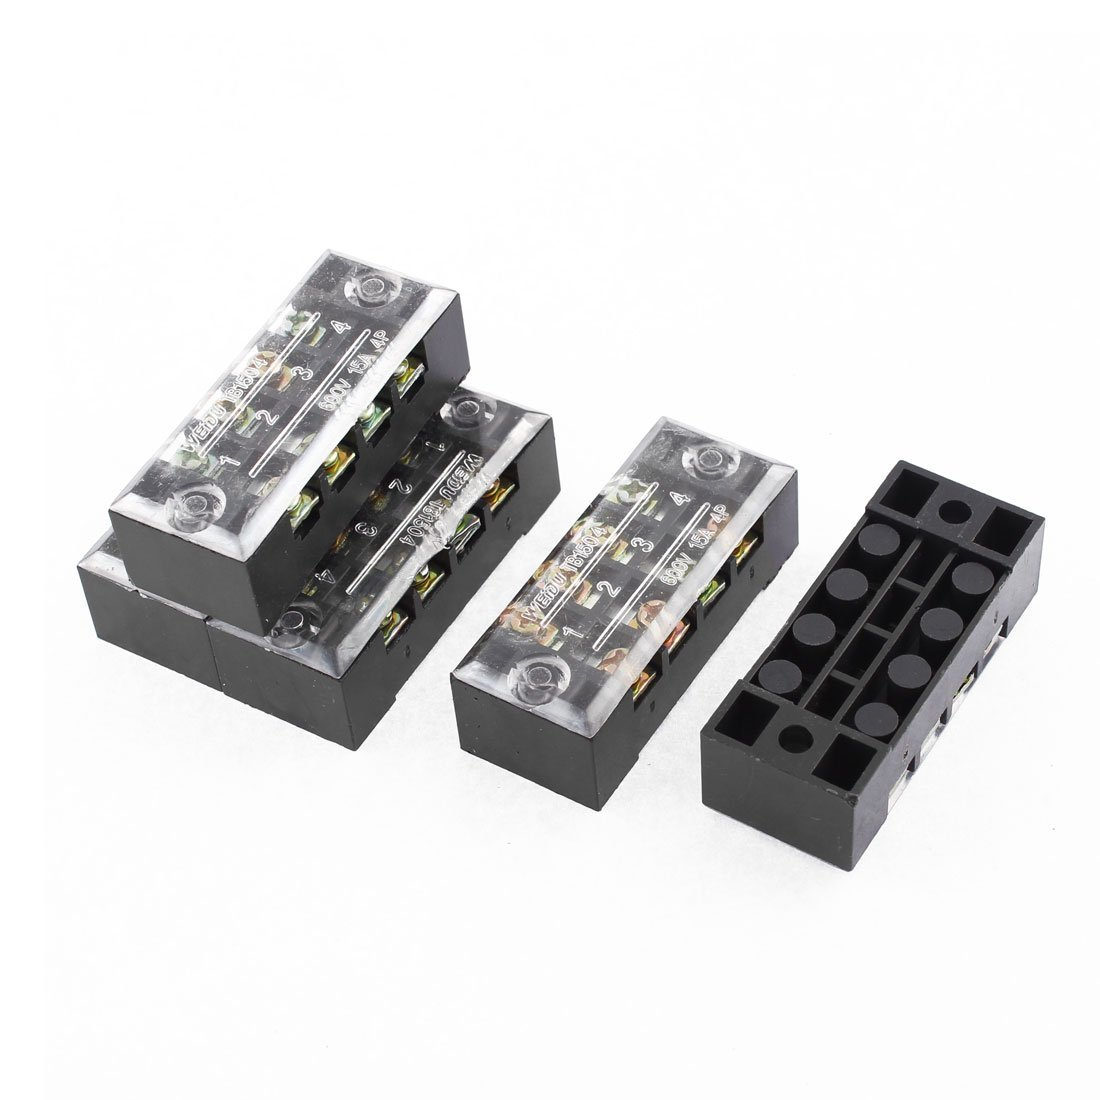 uxcell AC 600V 15A Dual Row 4P Screw Terminal Electric Barrier Block 5 Pcs